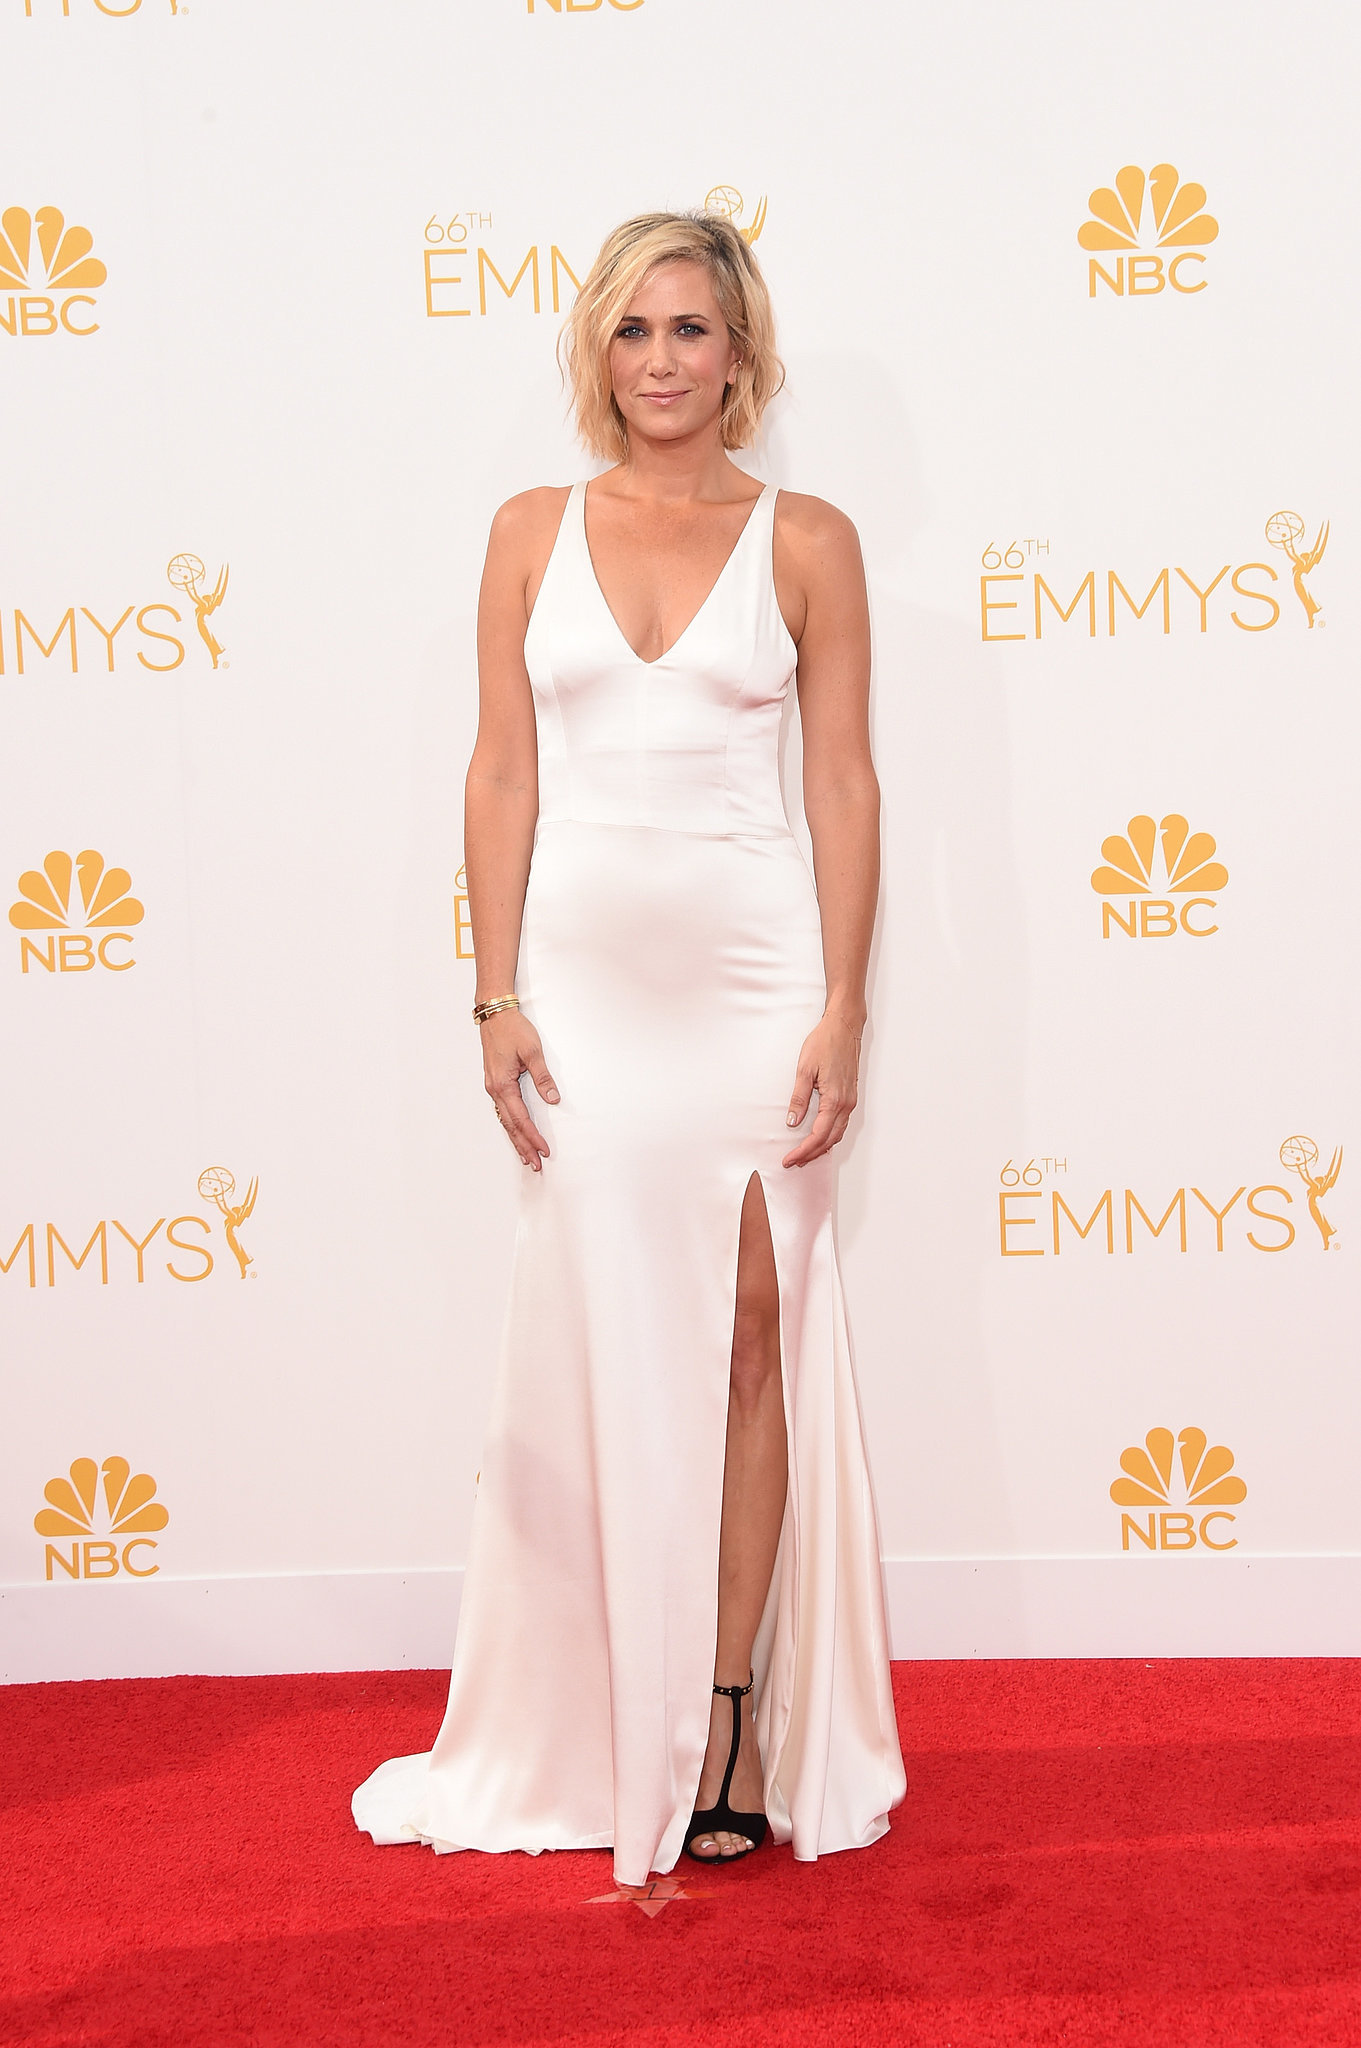 Kristen Wiig in Vera Wang at the 2014 Emmy Awards